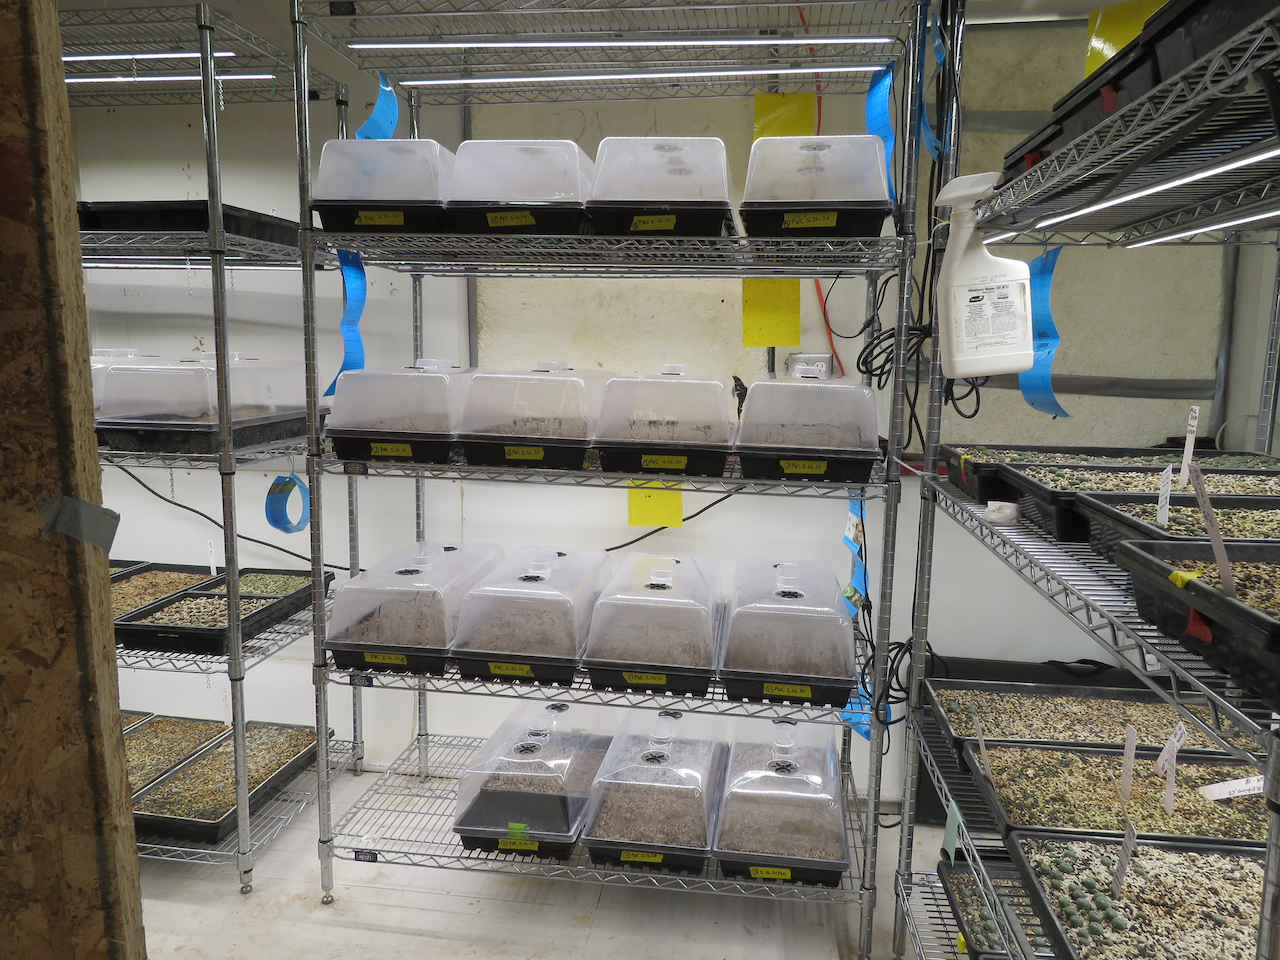 Trays of planted seeds